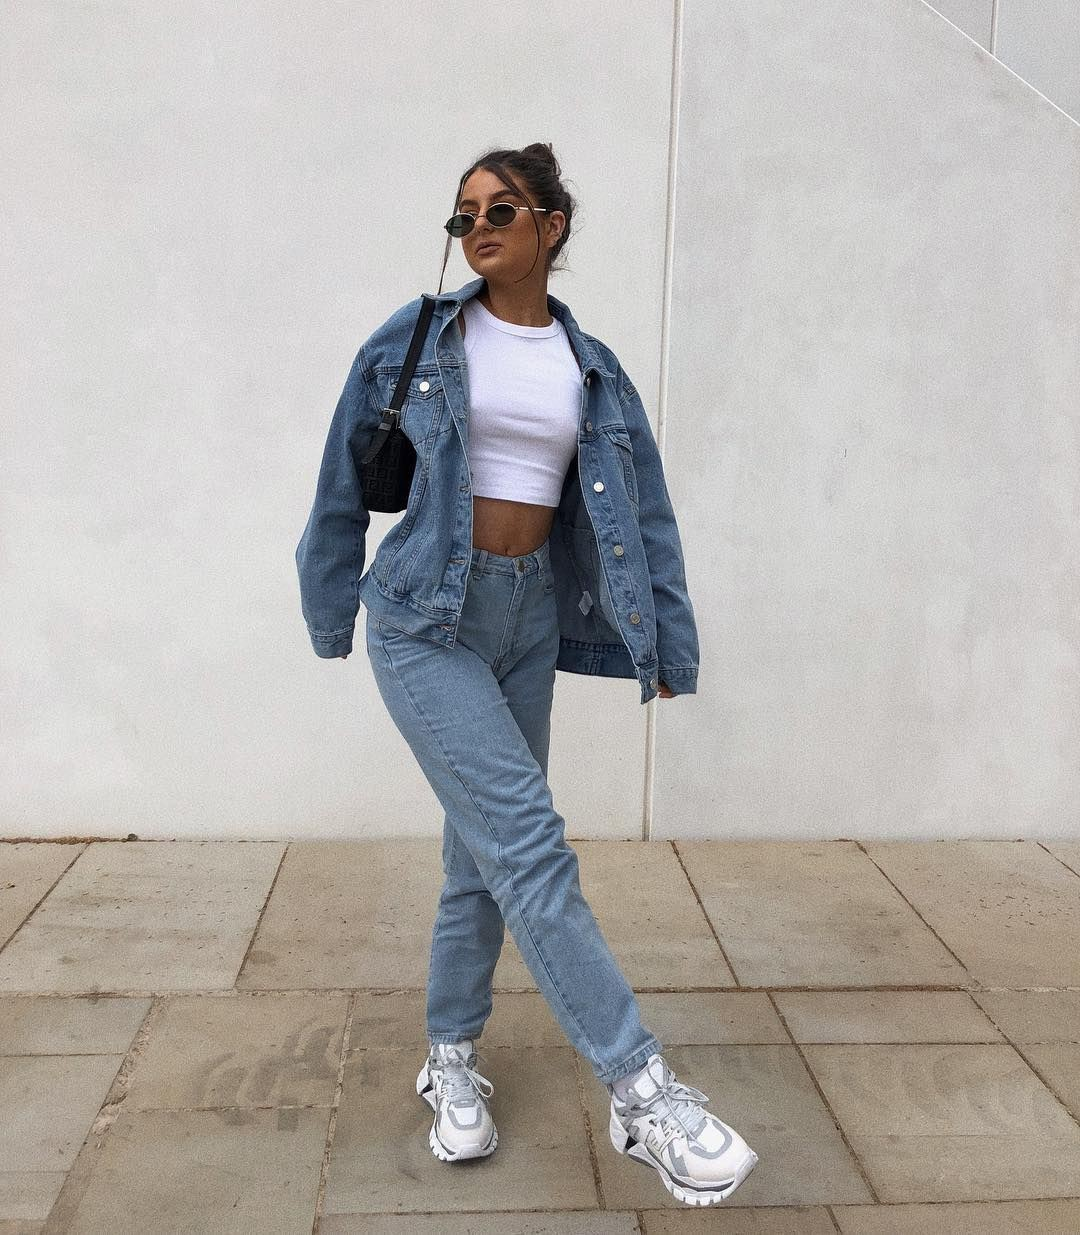 white matching outfit with jacket, denim, jeans